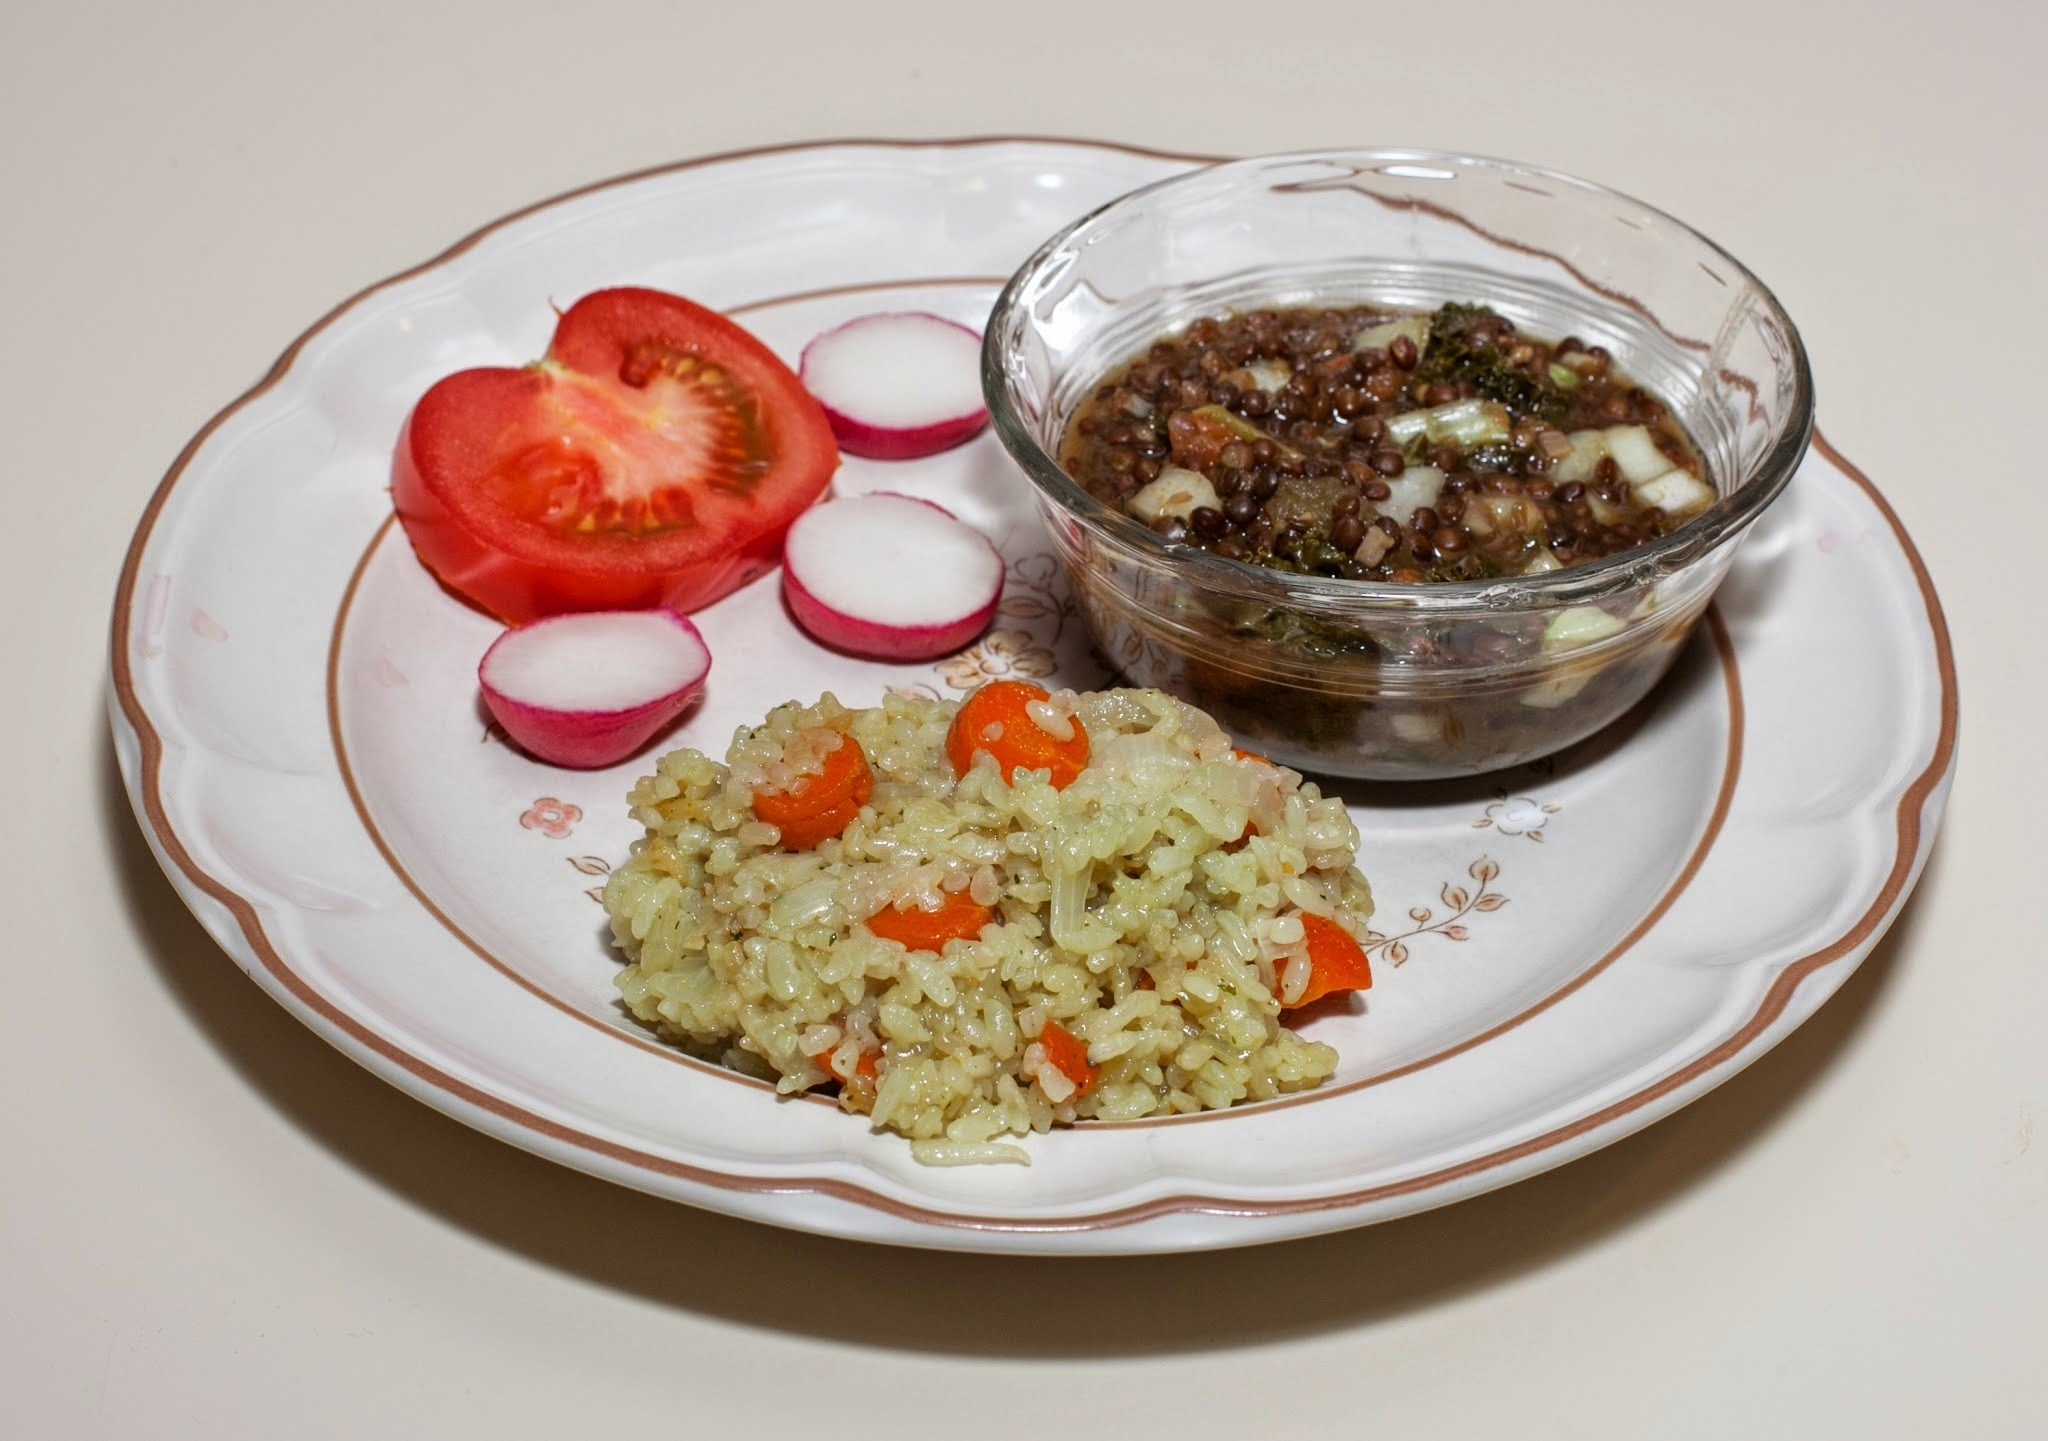 Black Beluga Lentil with Tomato, Three Kinds of Kale, and Bok Choy, served with Jade Pearl Rice with Carrot and Onion (No Added Fat)